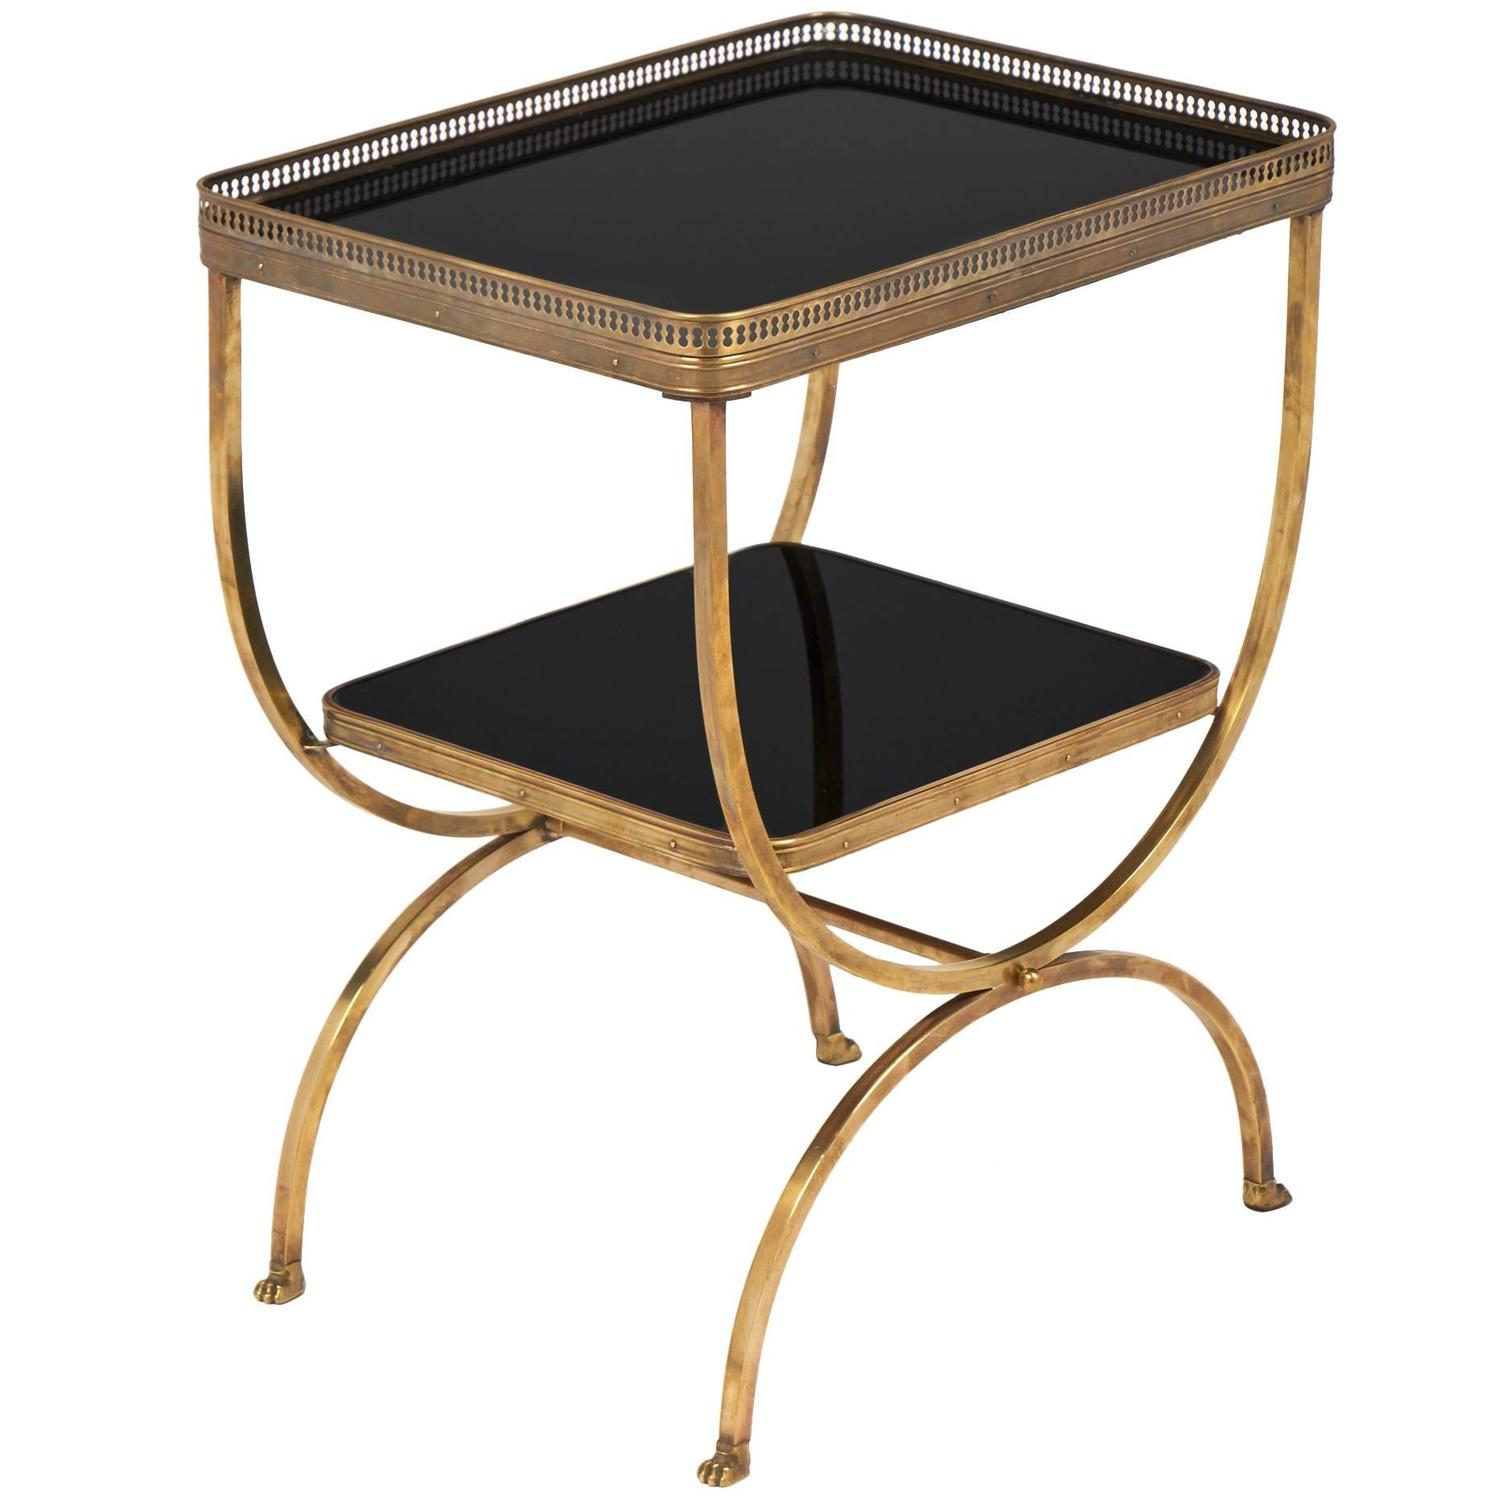 Vintage Brass Curule Side Table with Black Glass Shelves at 1stdibs